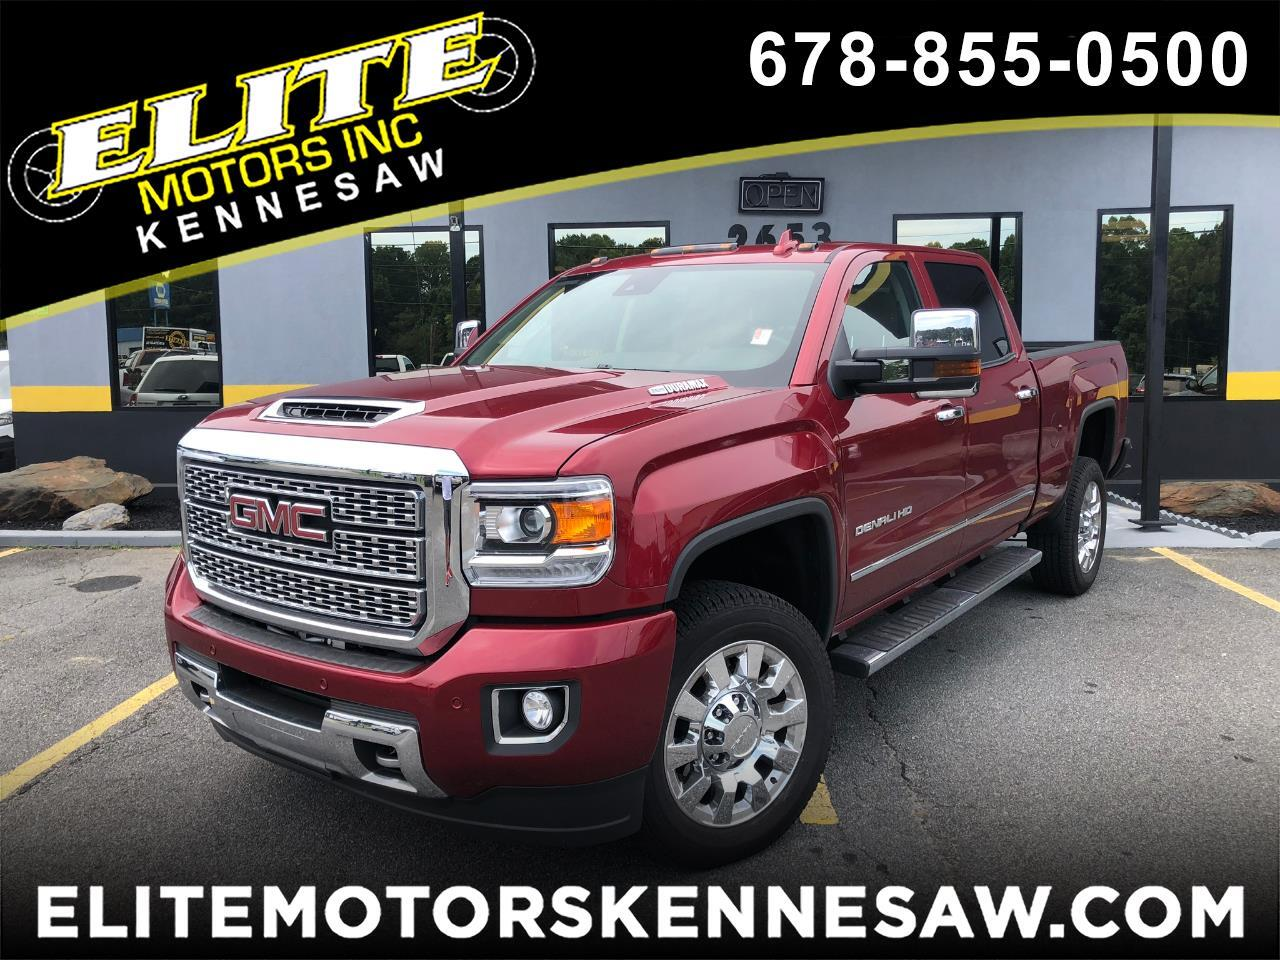 Used Cars for Sale Kennesaw GA 30152-3442 Elite Motors Kennesaw